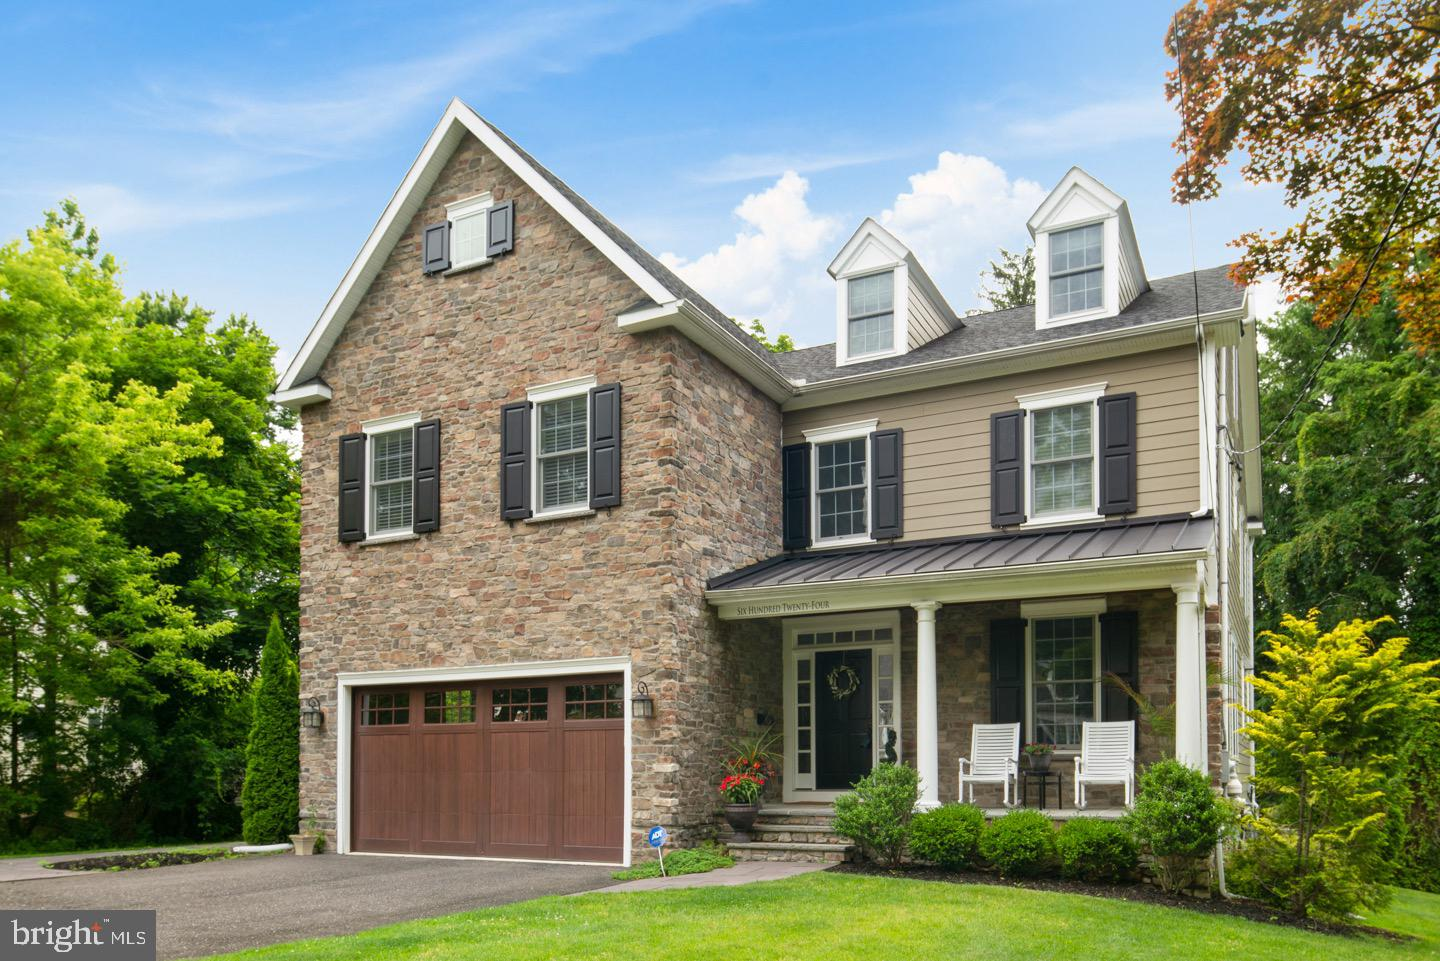 624 POMONA, HADDONFIELD, NJ 08033